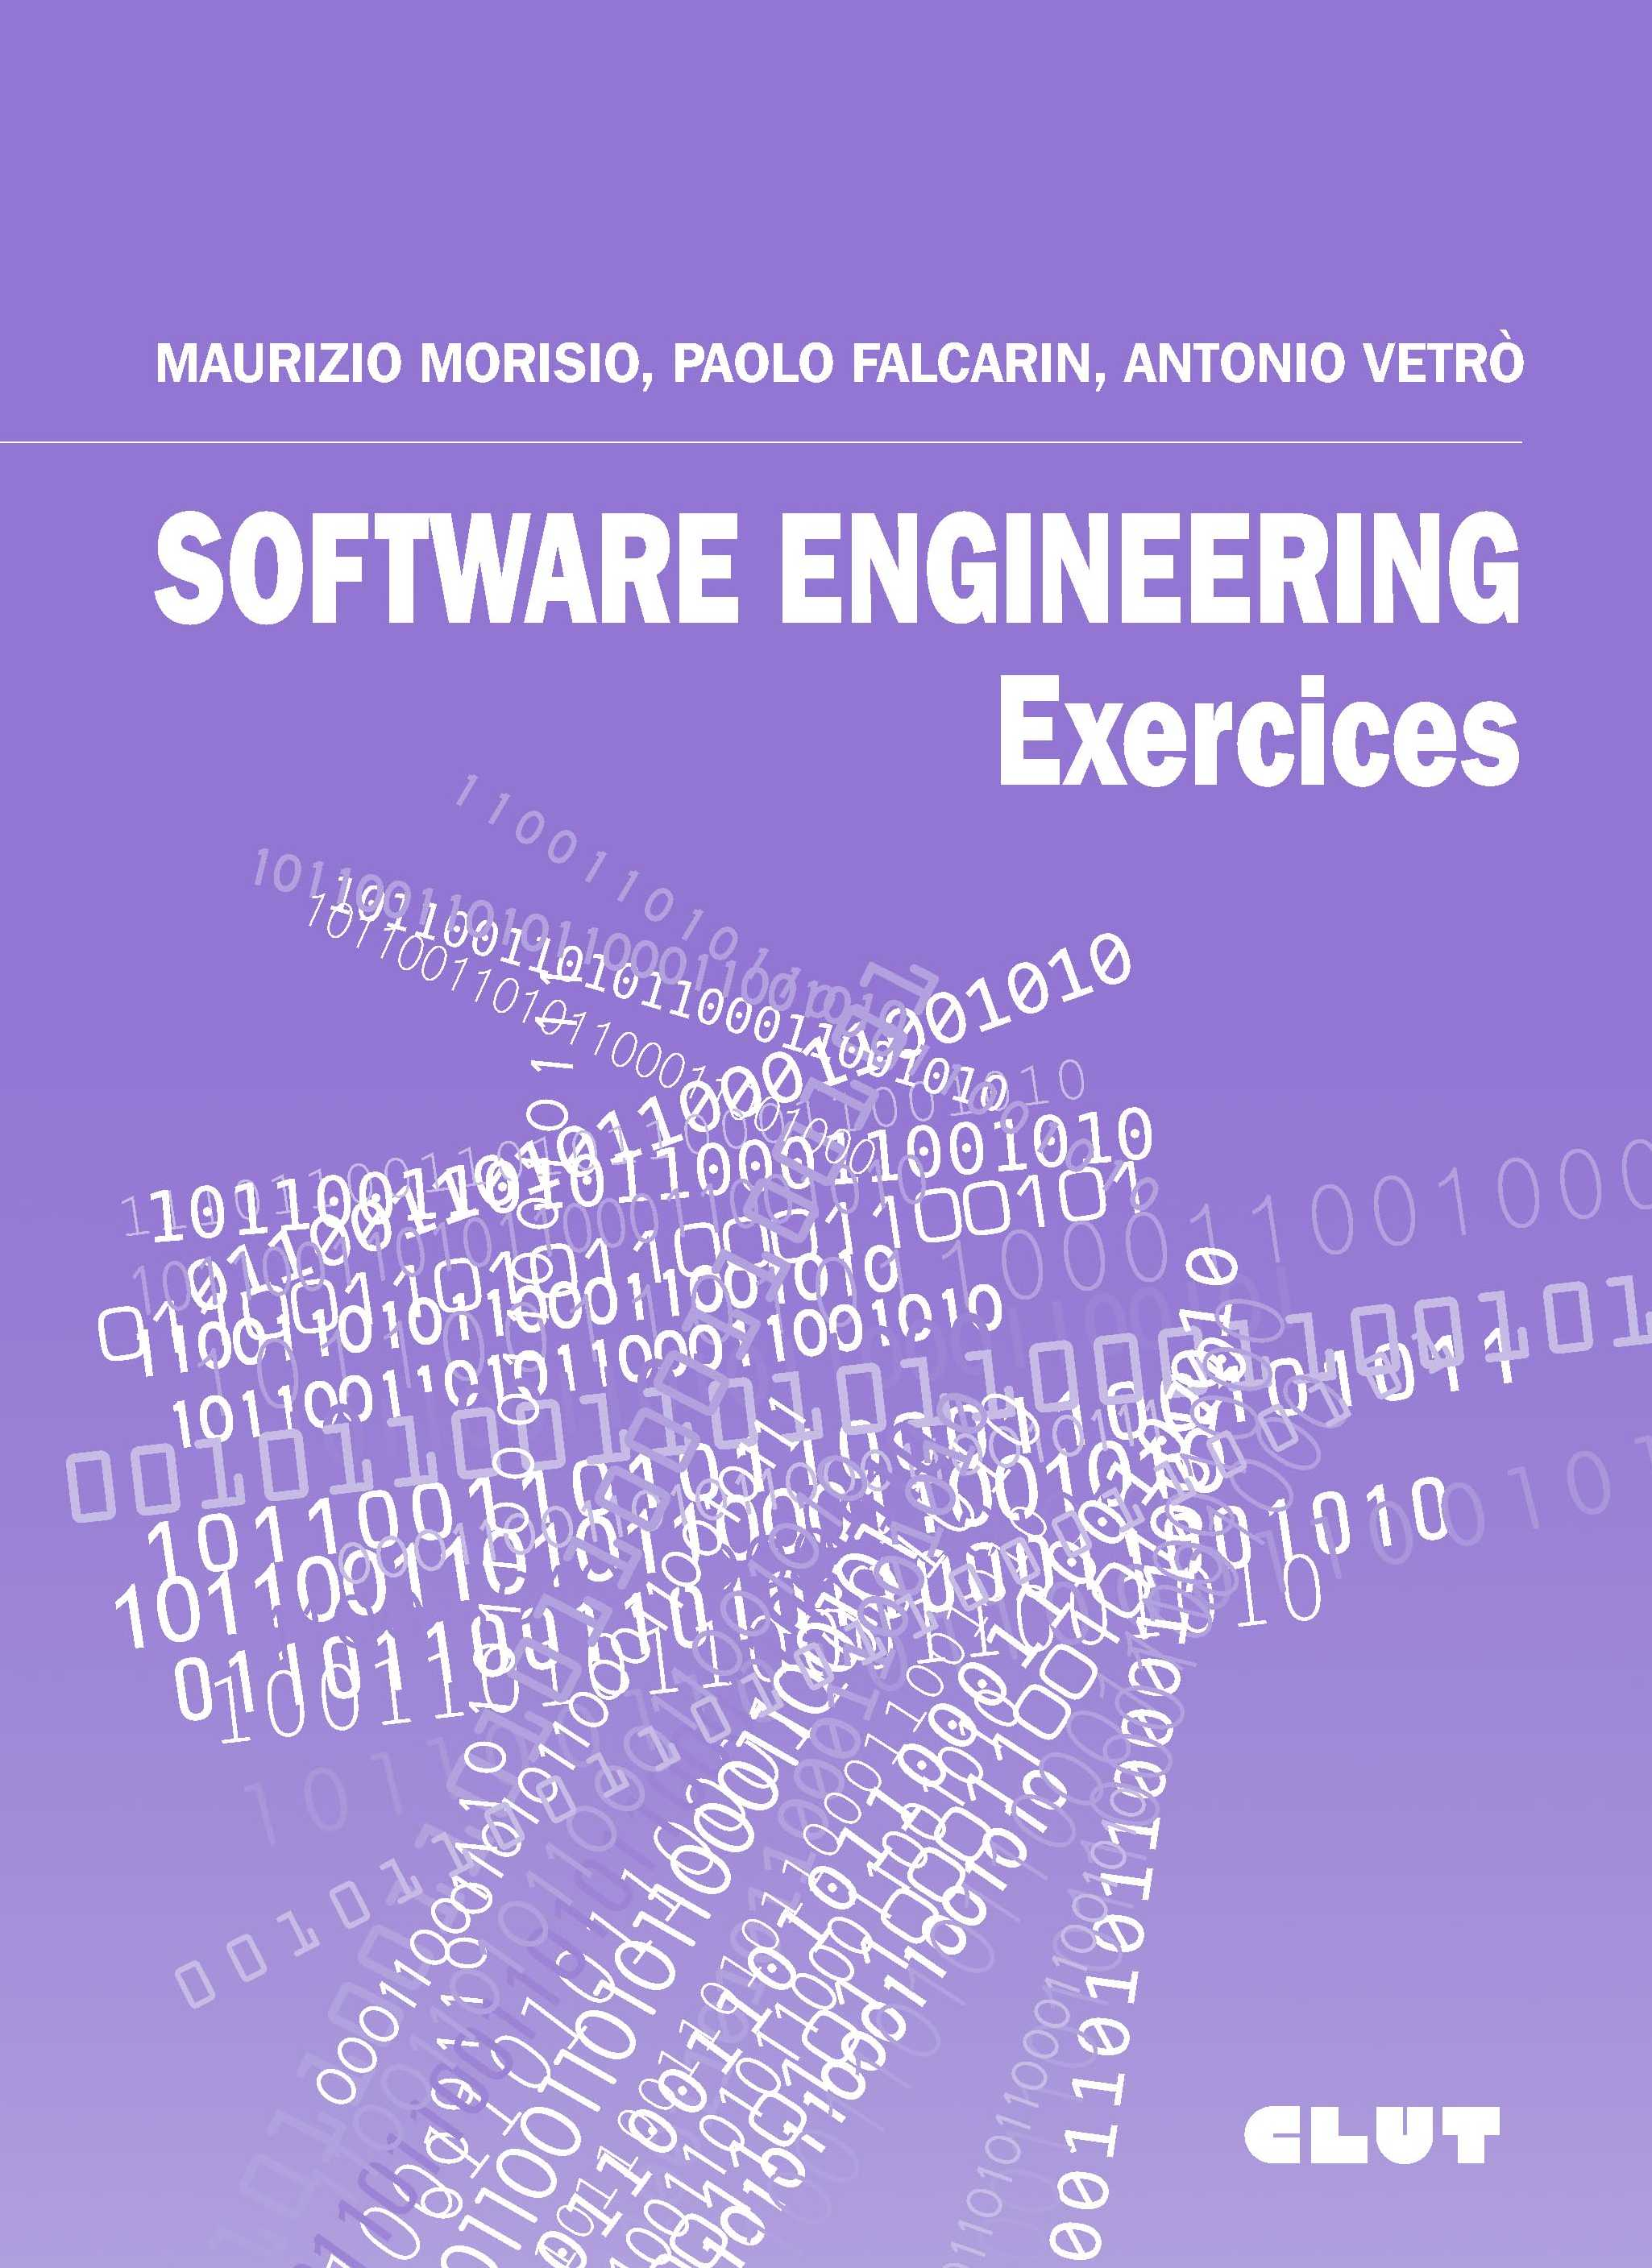 SOFTWARE ENGINEERING - EXERCISES